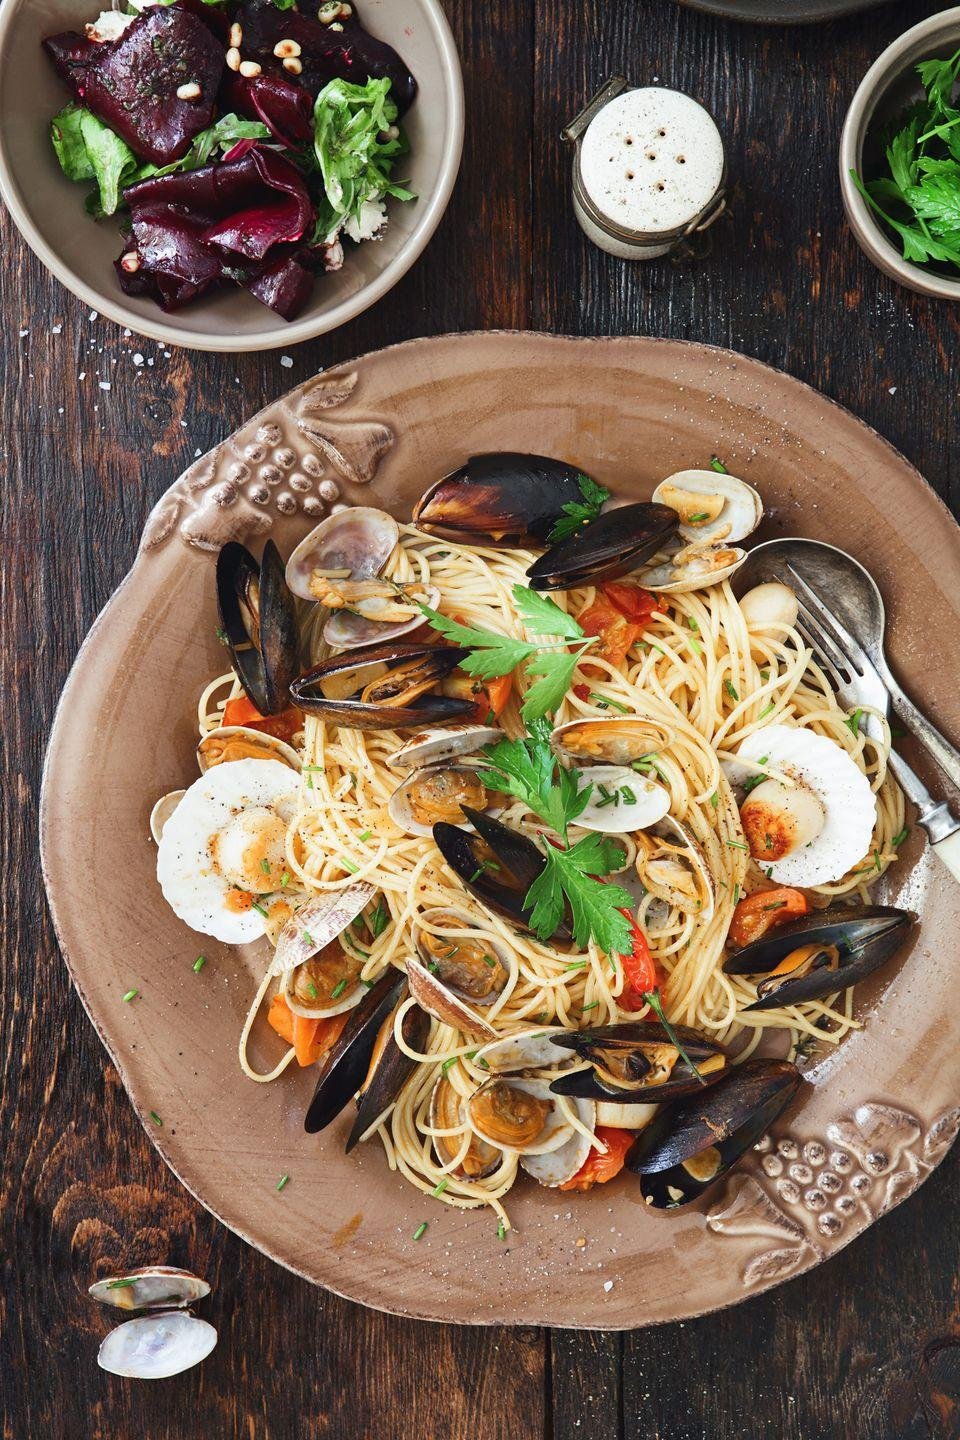 """<p>Celebrate like an Italian by indulging in their iconic seven-course seafood feast that dates back to the early 1900s. You can make an array of recipes at home, or avoid dirtying your dishes by finding a local Italian restaurant that offers a special Christmas Eve menu.</p><p><a class=""""link rapid-noclick-resp"""" href=""""https://www.amazon.com/s/ref=nb_sb_ss_i_3_7?url=search-alias%3Daps&field-keywords=seafood+tools&sprefix=seafood%2Caps%2C121&crid=27WI9QAA212DI&rh=i%3Aaps%2Ck%3Aseafood+tools&tag=syn-yahoo-20&ascsubtag=%5Bartid%7C10050.g.25411840%5Bsrc%7Cyahoo-us"""" rel=""""nofollow noopener"""" target=""""_blank"""" data-ylk=""""slk:SHOP SEAFOOD TOOLS"""">SHOP SEAFOOD TOOLS</a></p>"""